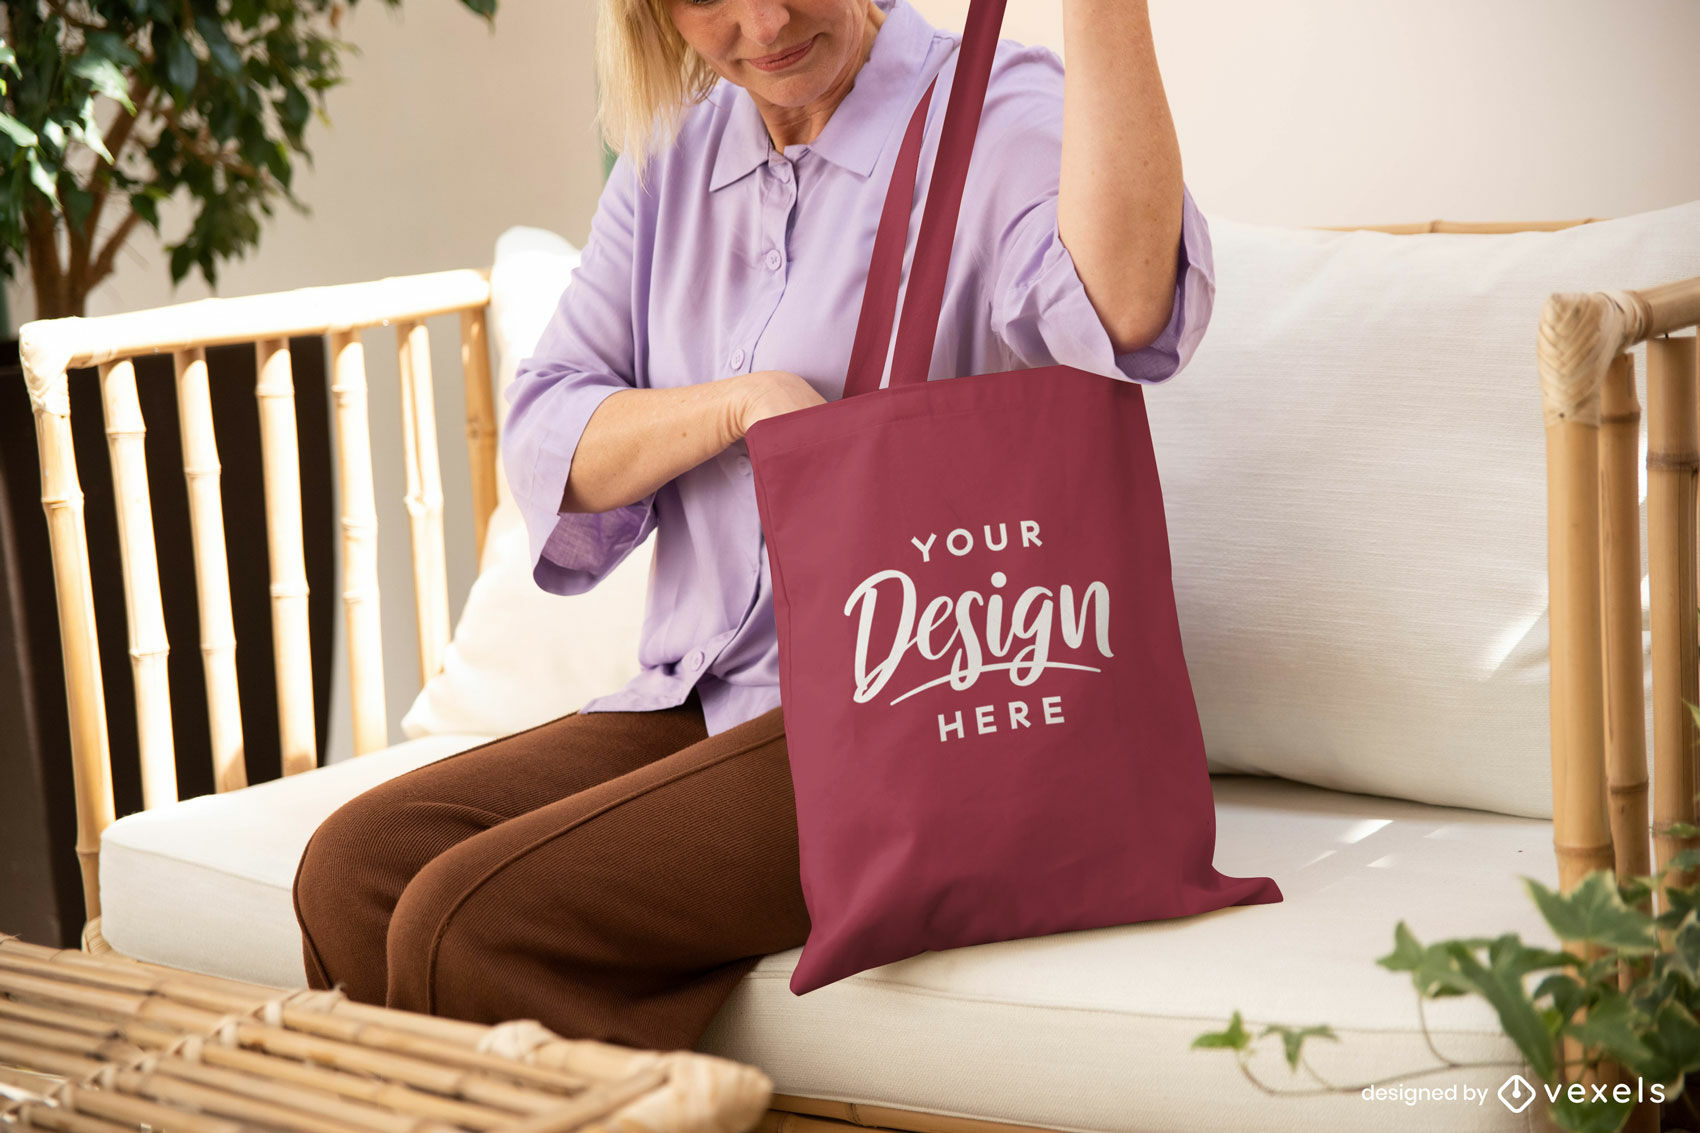 Woman with maroon tote bag in couch mockup